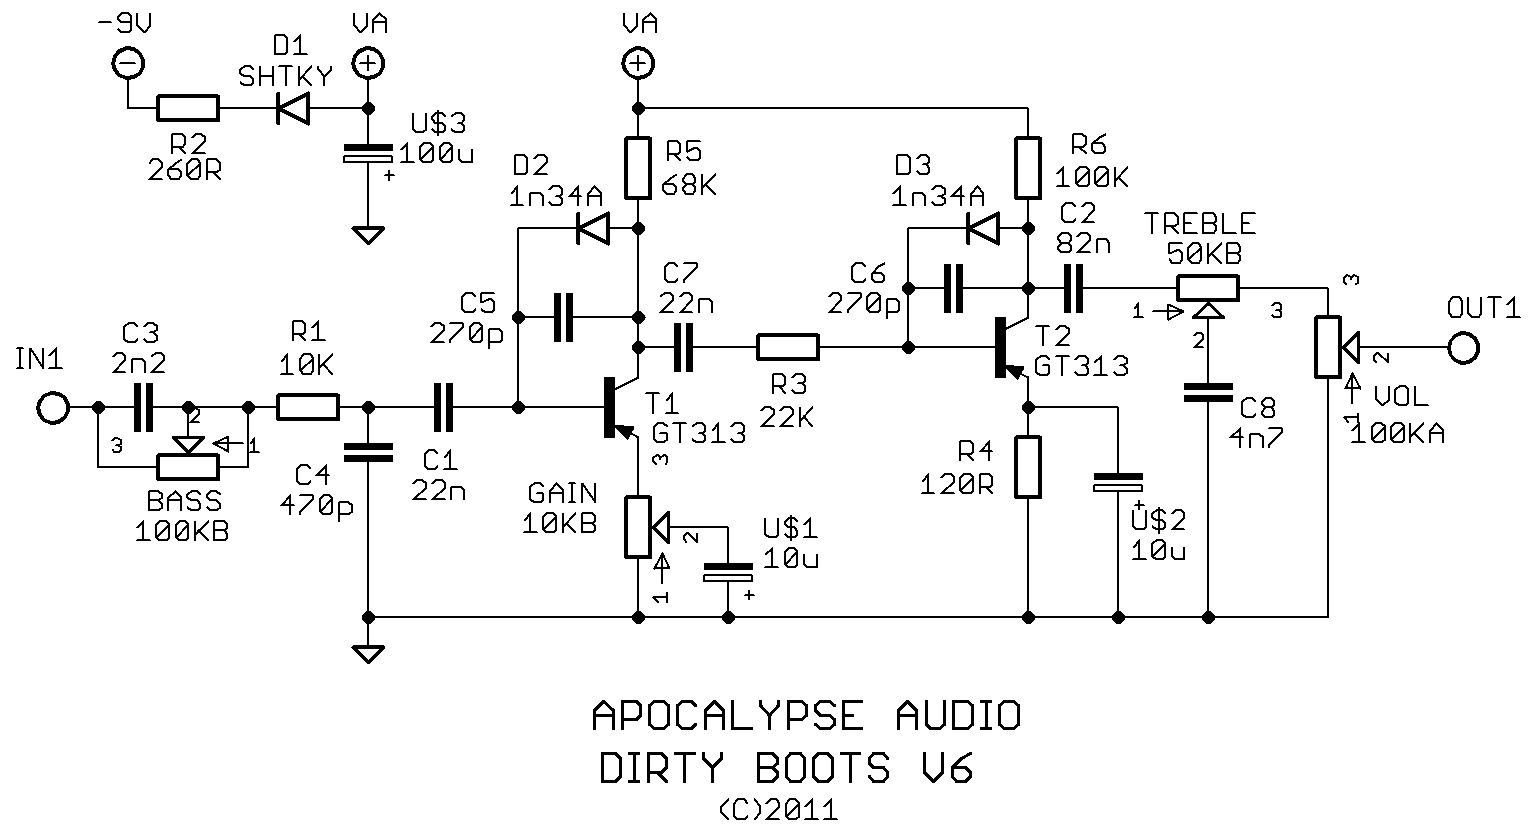 Apocalypse Audio Dirty Boots V6